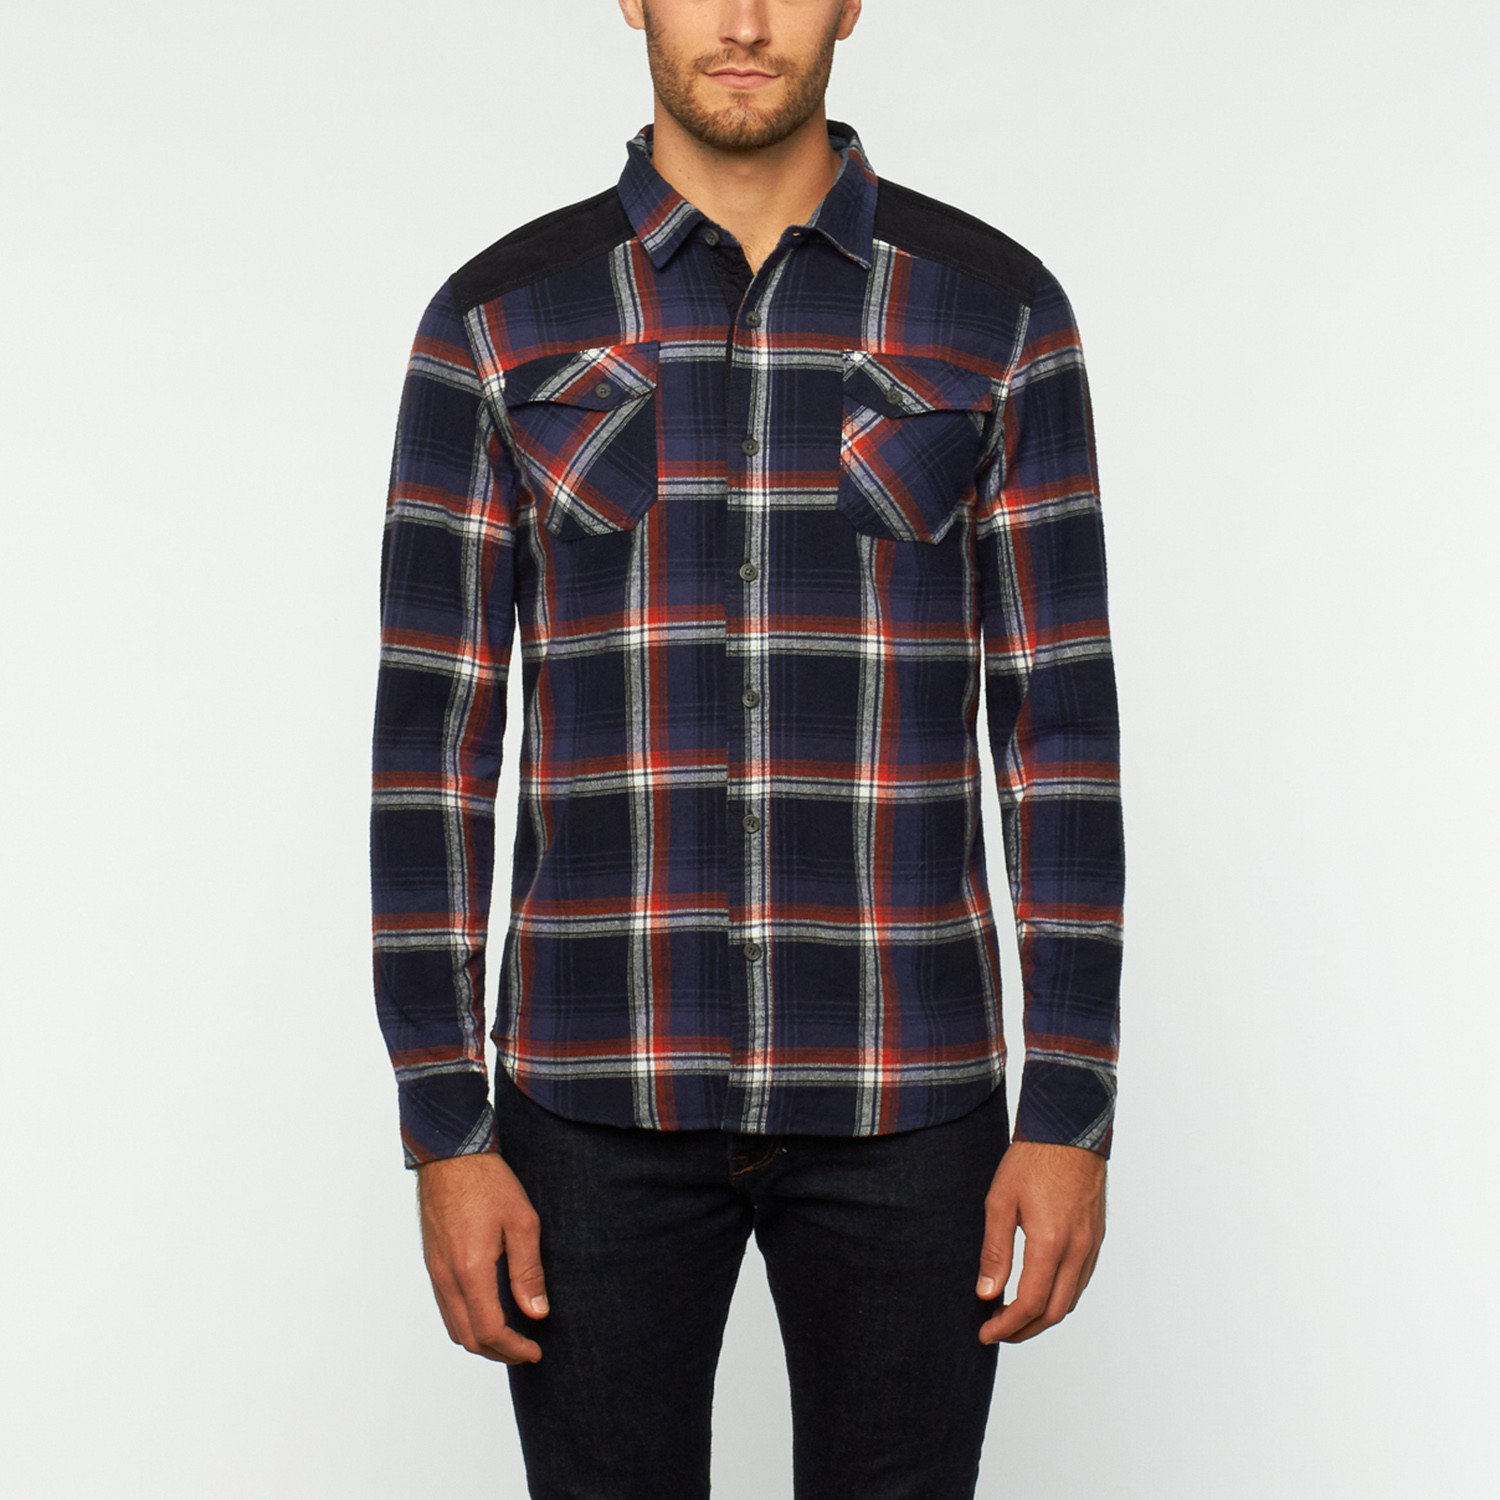 Emile Button Up Shirt Navy S Px Clothing Touch Of